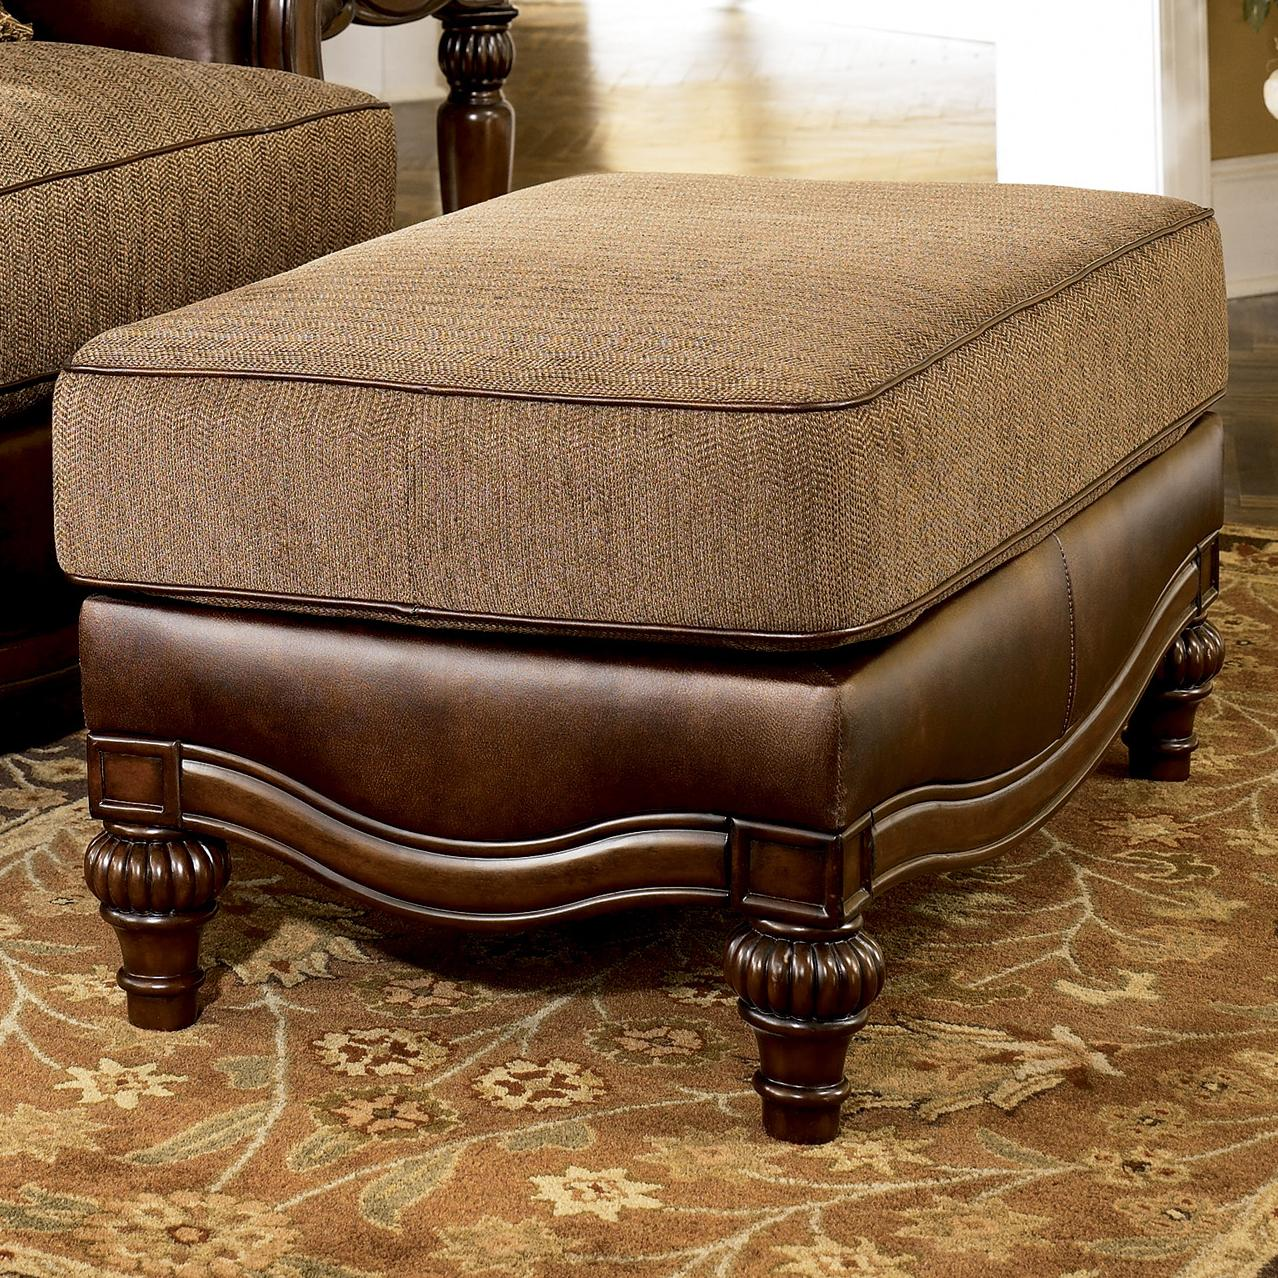 Signature Design by Ashley Claremore - Antique Ottoman - Item Number: 8430314